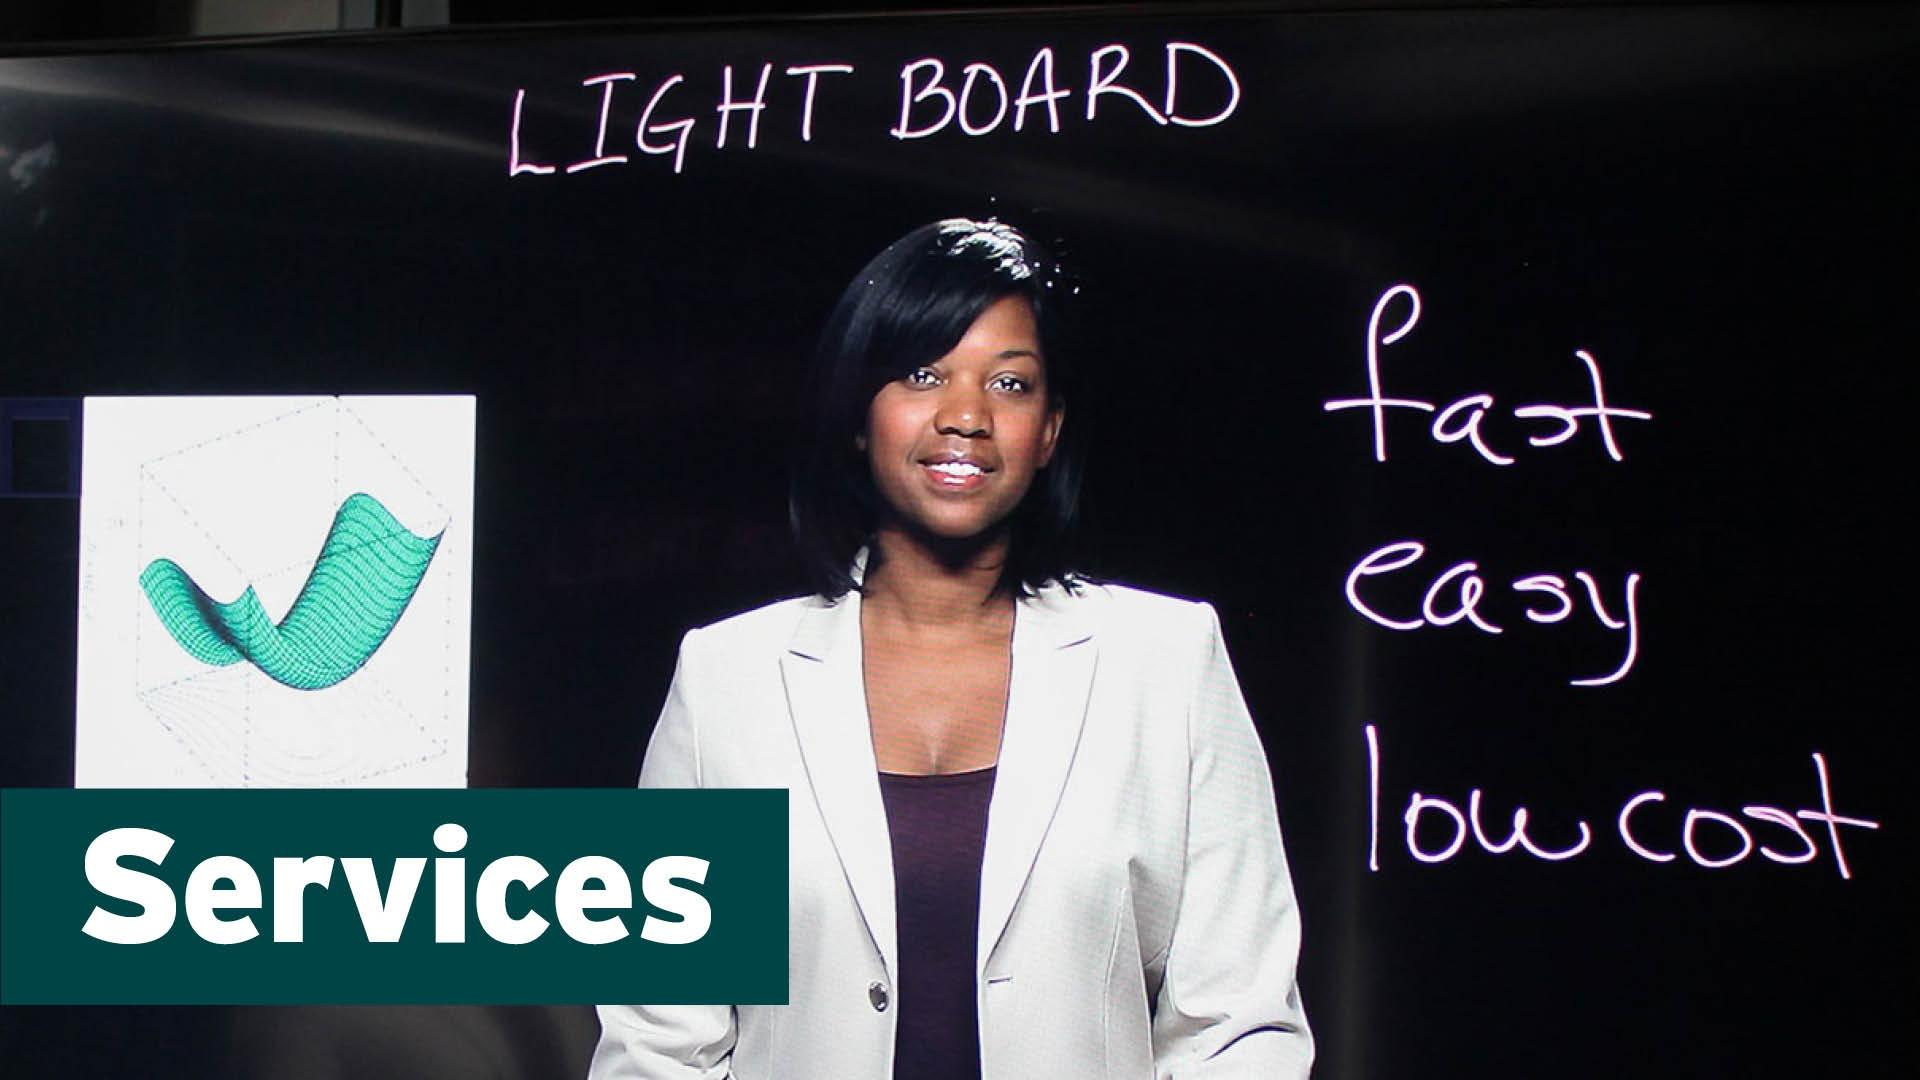 UNC-TV's Lightboard is one of the unique services it offers.